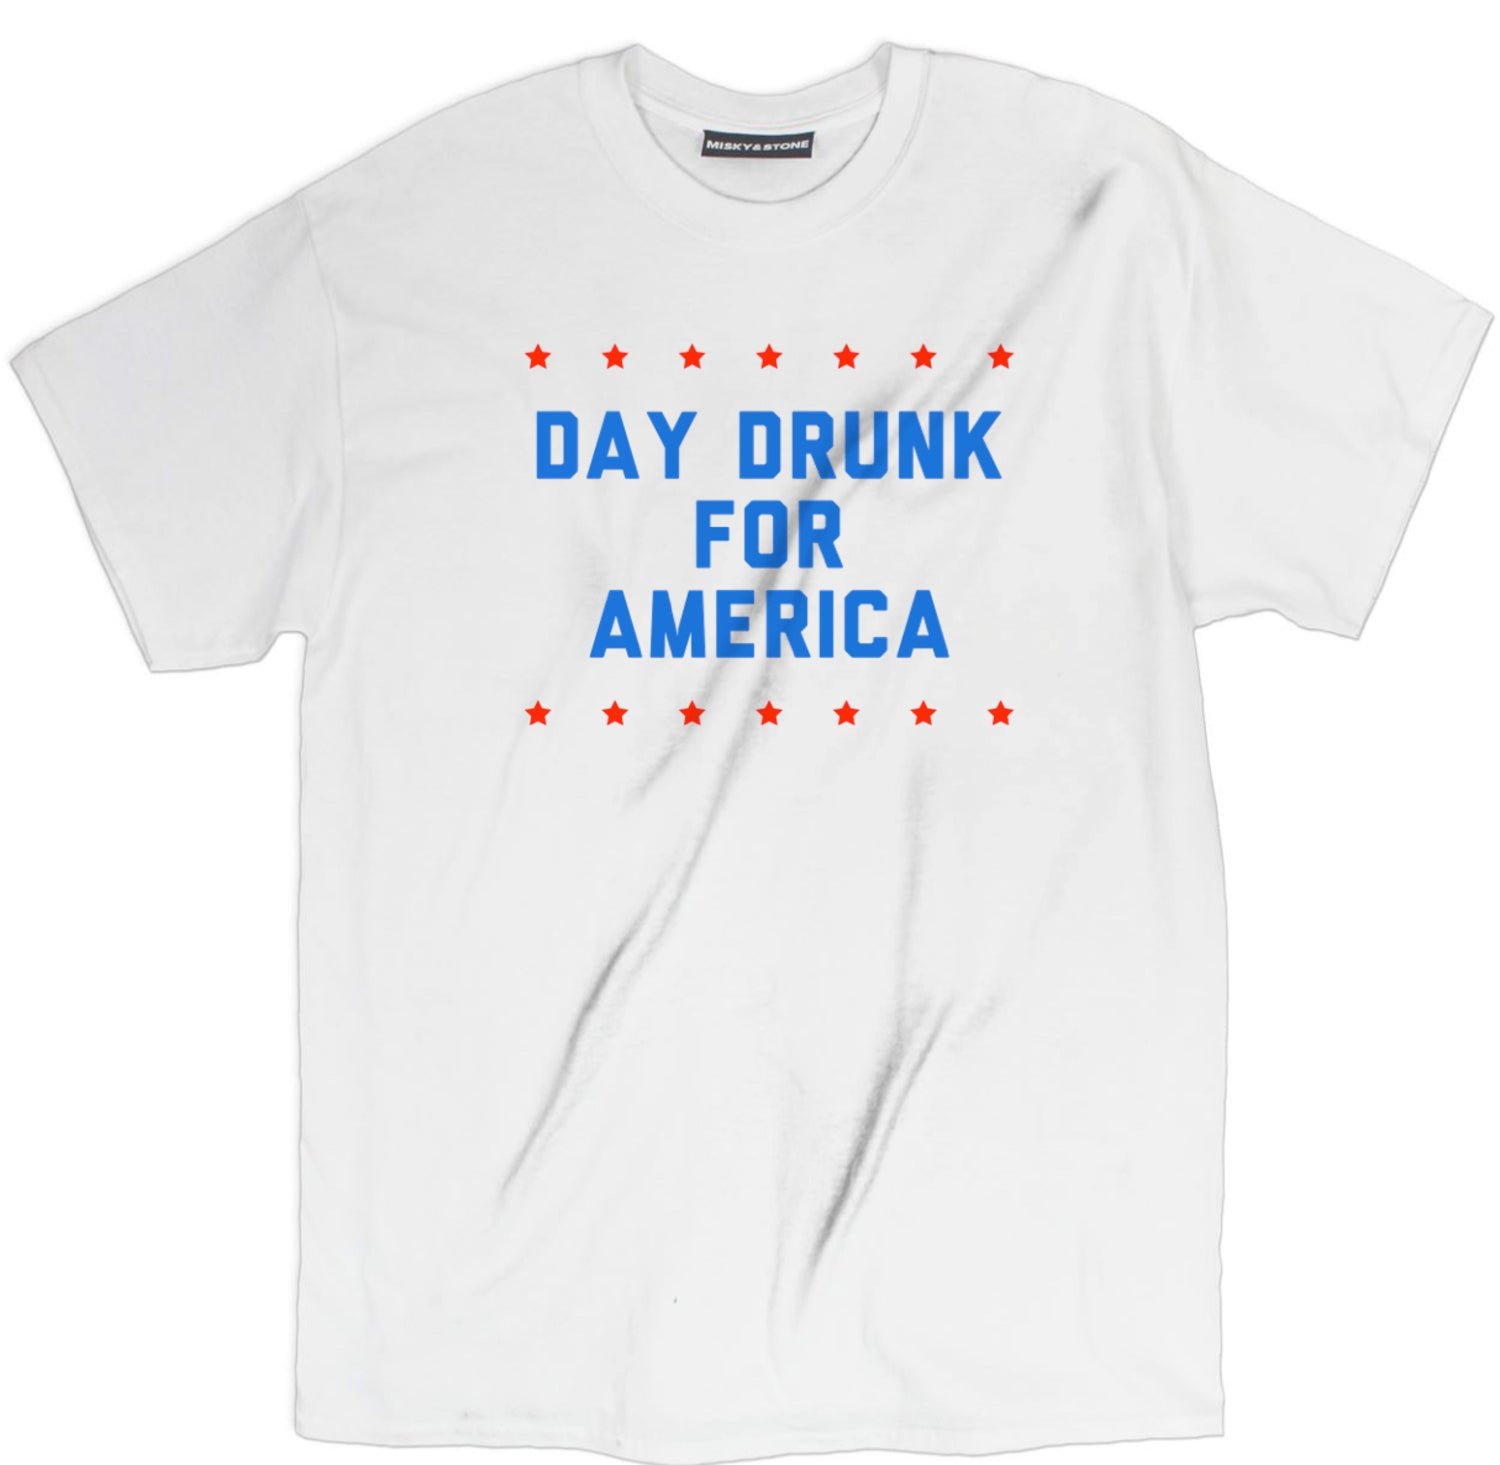 day drunk for America tee, drinking tee, america tee, independence day tee, fourth of july shirts, 4th of july shirts, 4th of july outfits, 4th of july t shirts, fourth of july outfits, 4th of july clothes, 4th of july apparel, funny 4th of july shirts, Funny america shirts, 4th of july t shirts, funny 4th of july t shirts for men, 4th of july tops